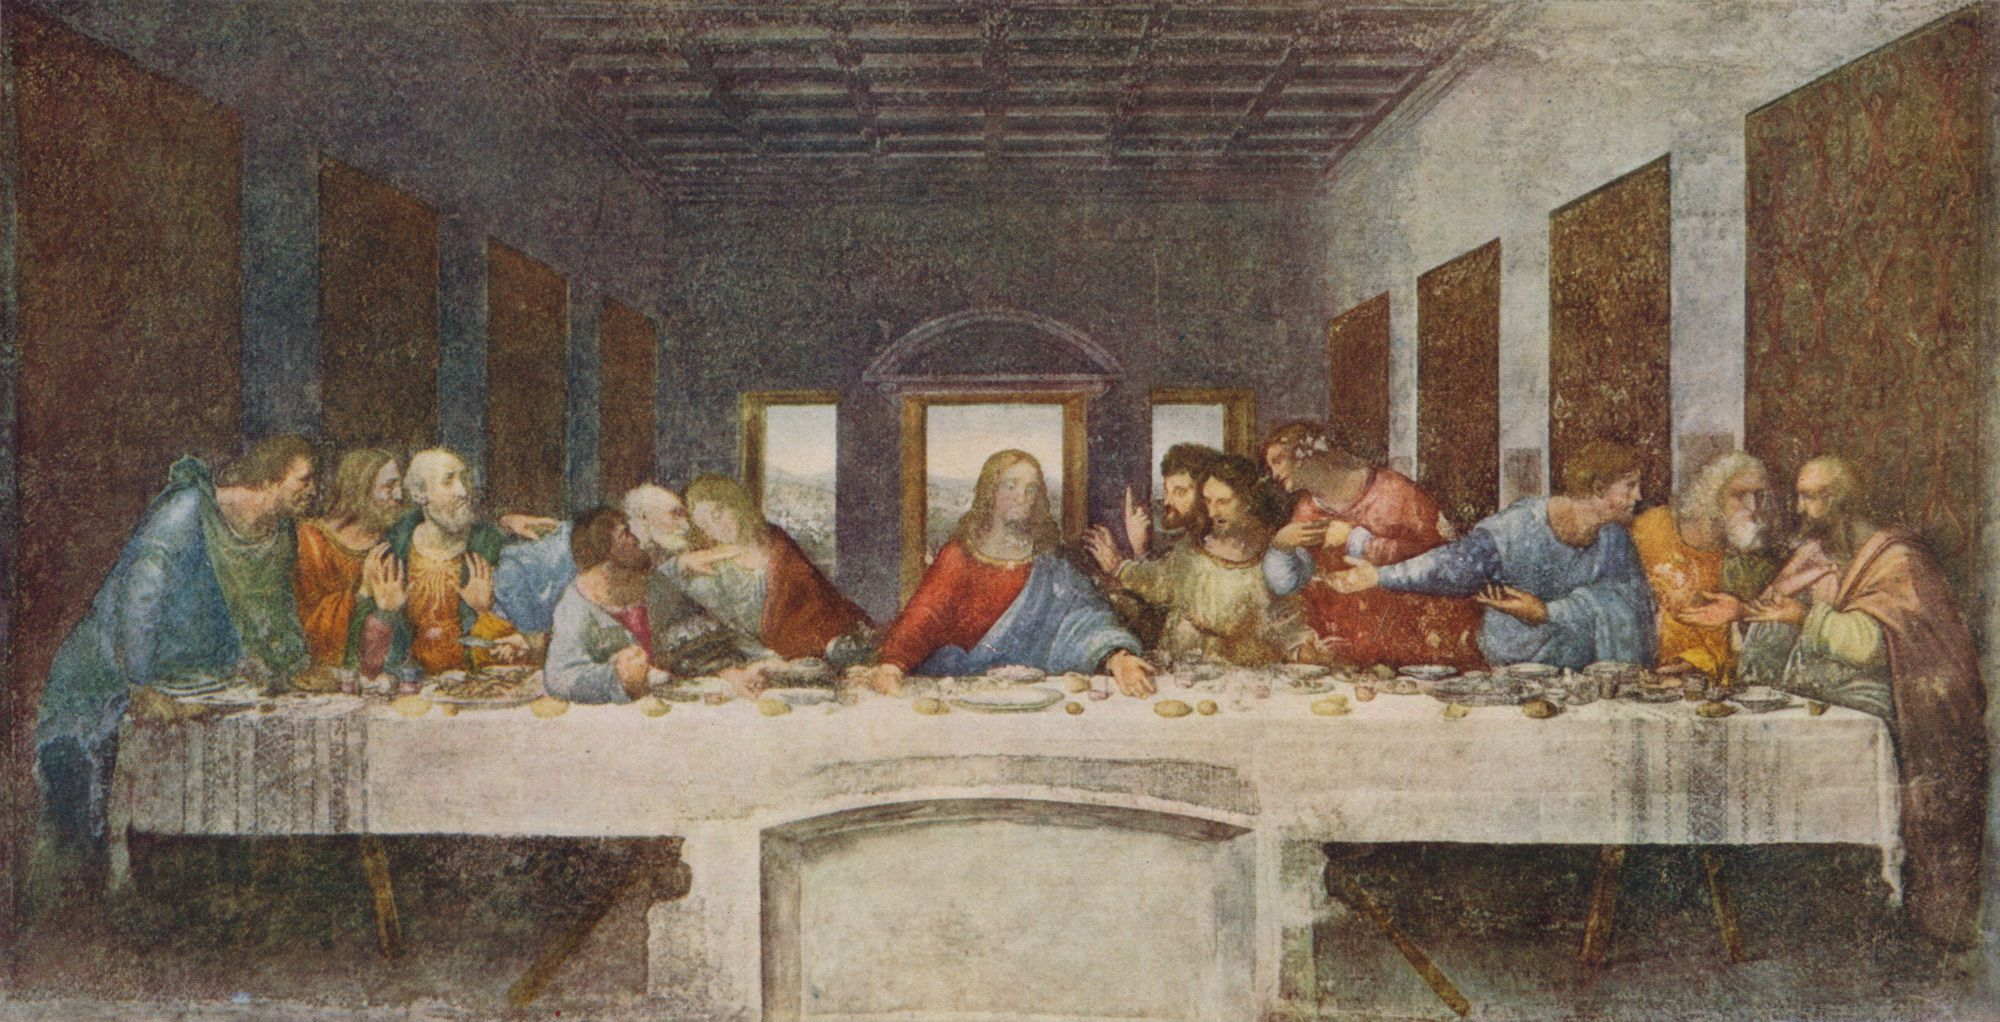 B Pimp My Classic Last Supper By Petchai Productions On